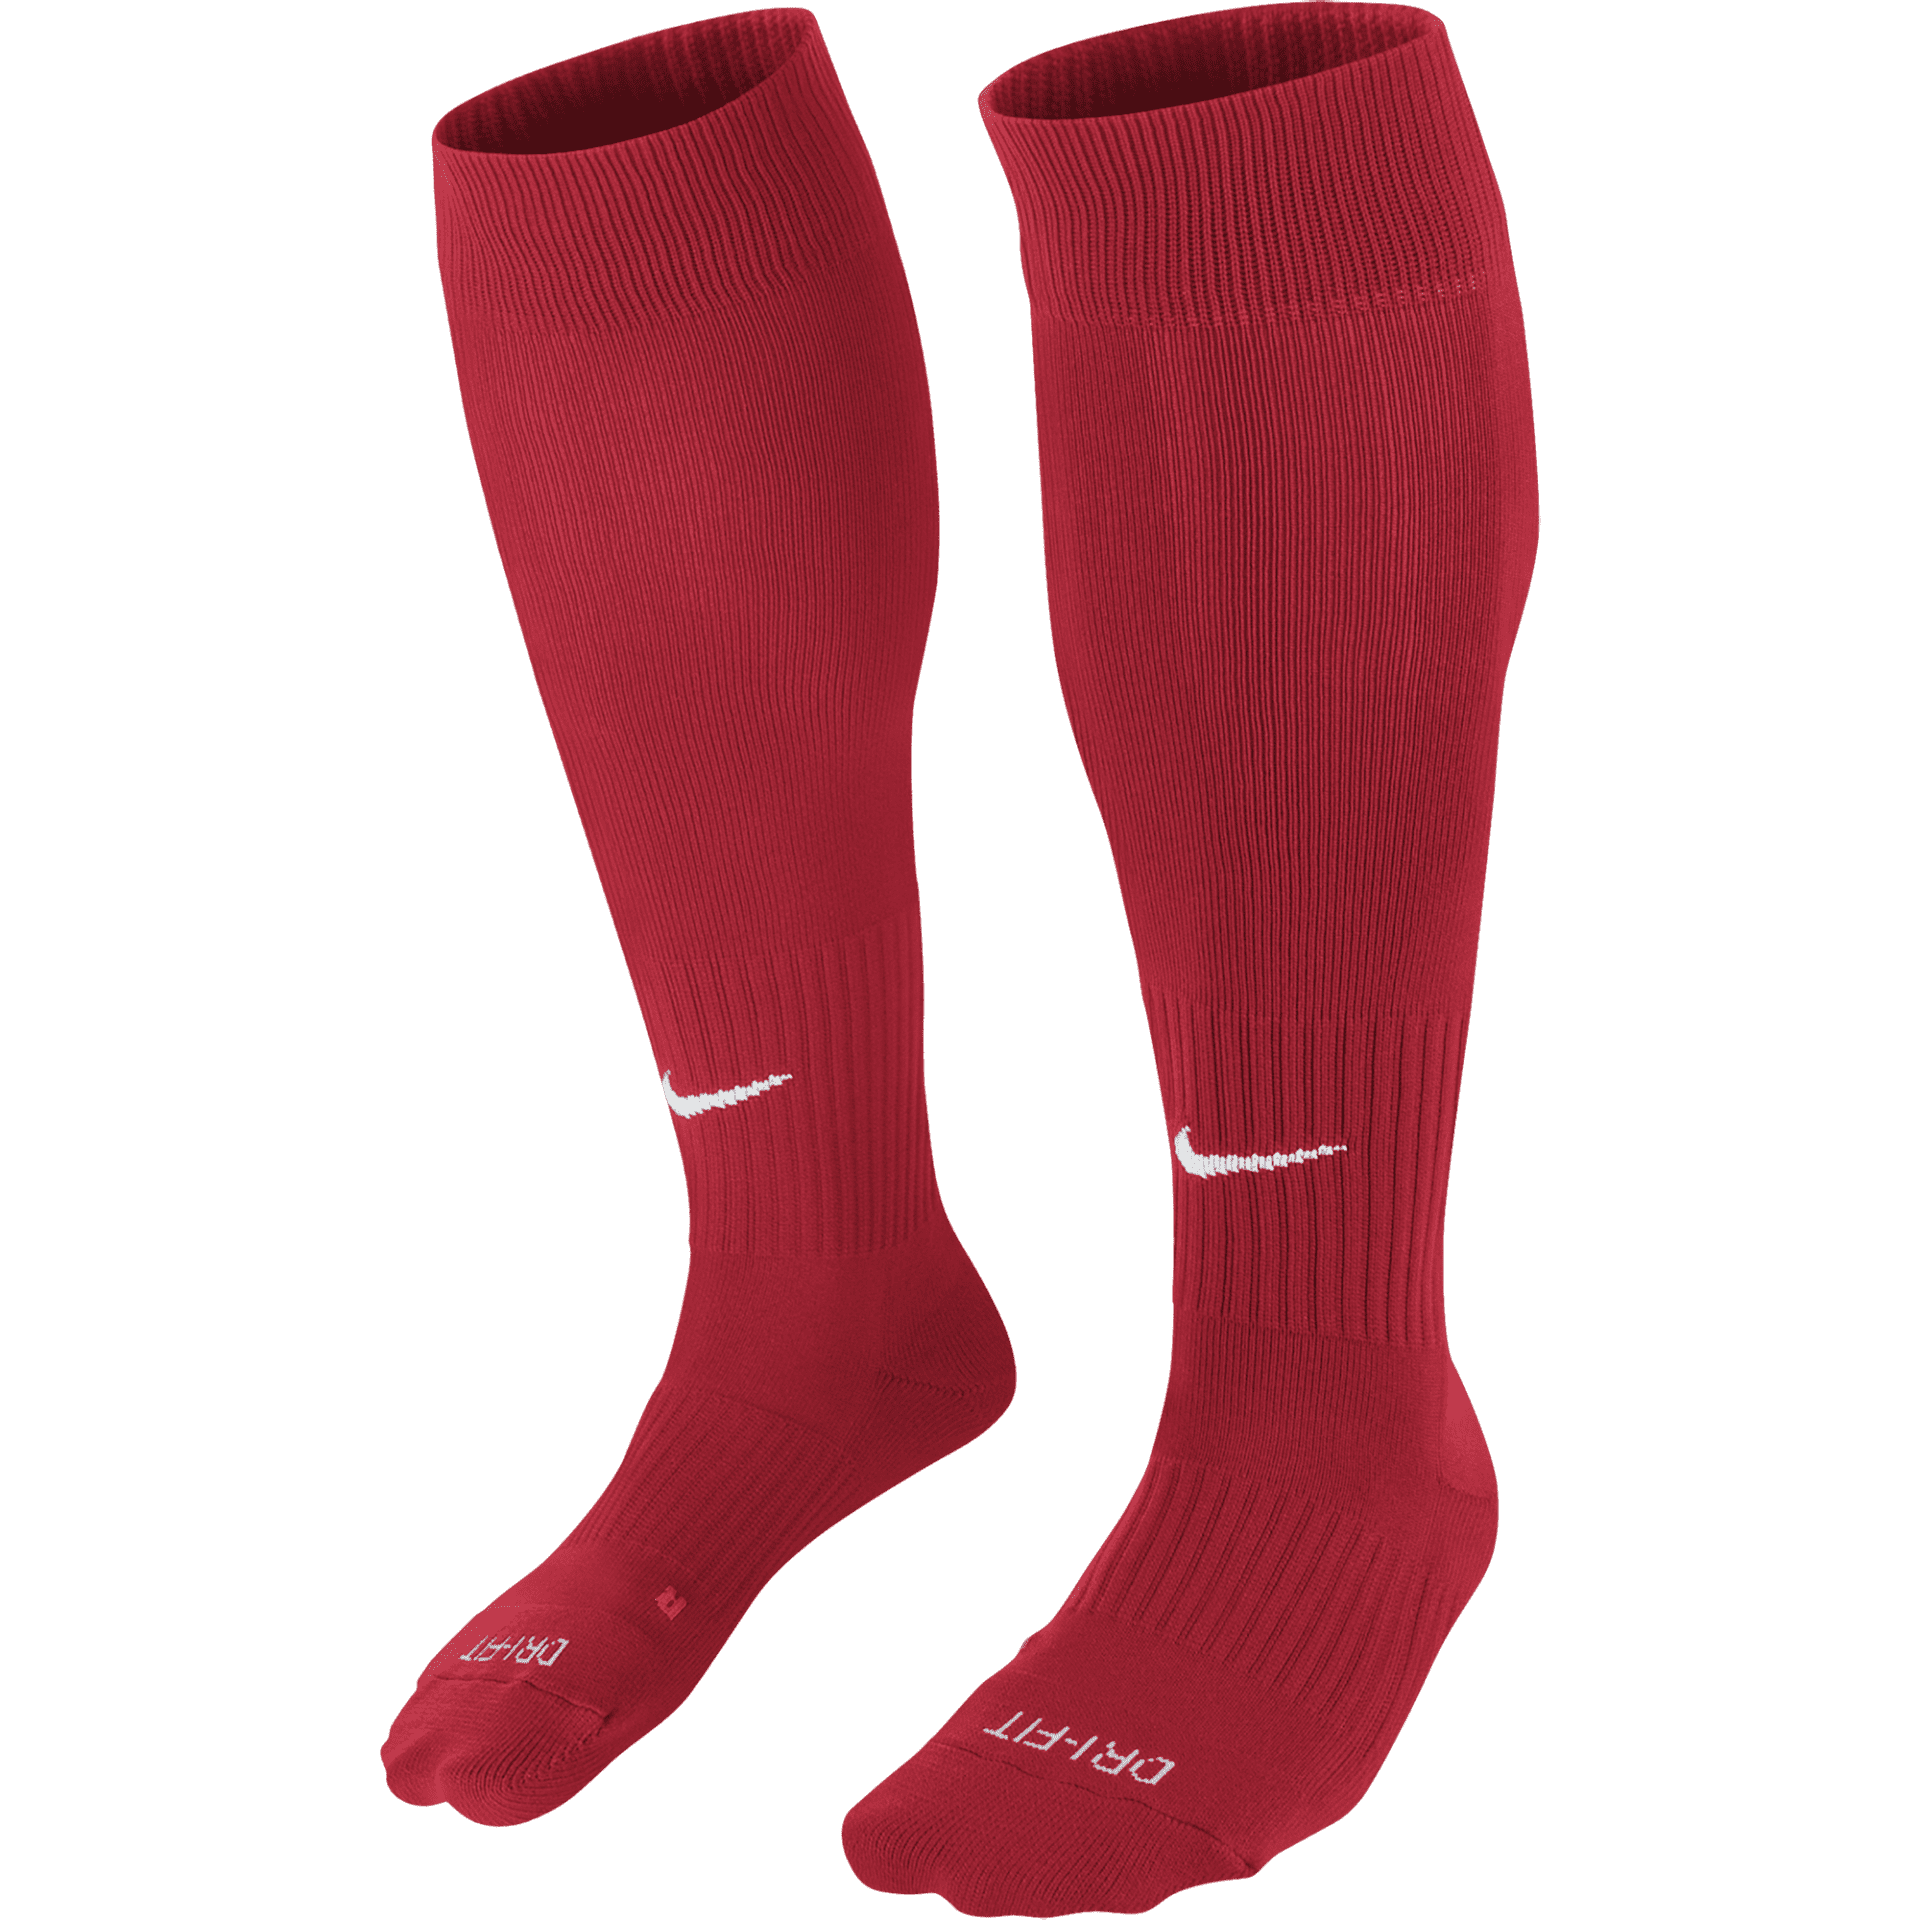 dundrum classic socks red  34153 p